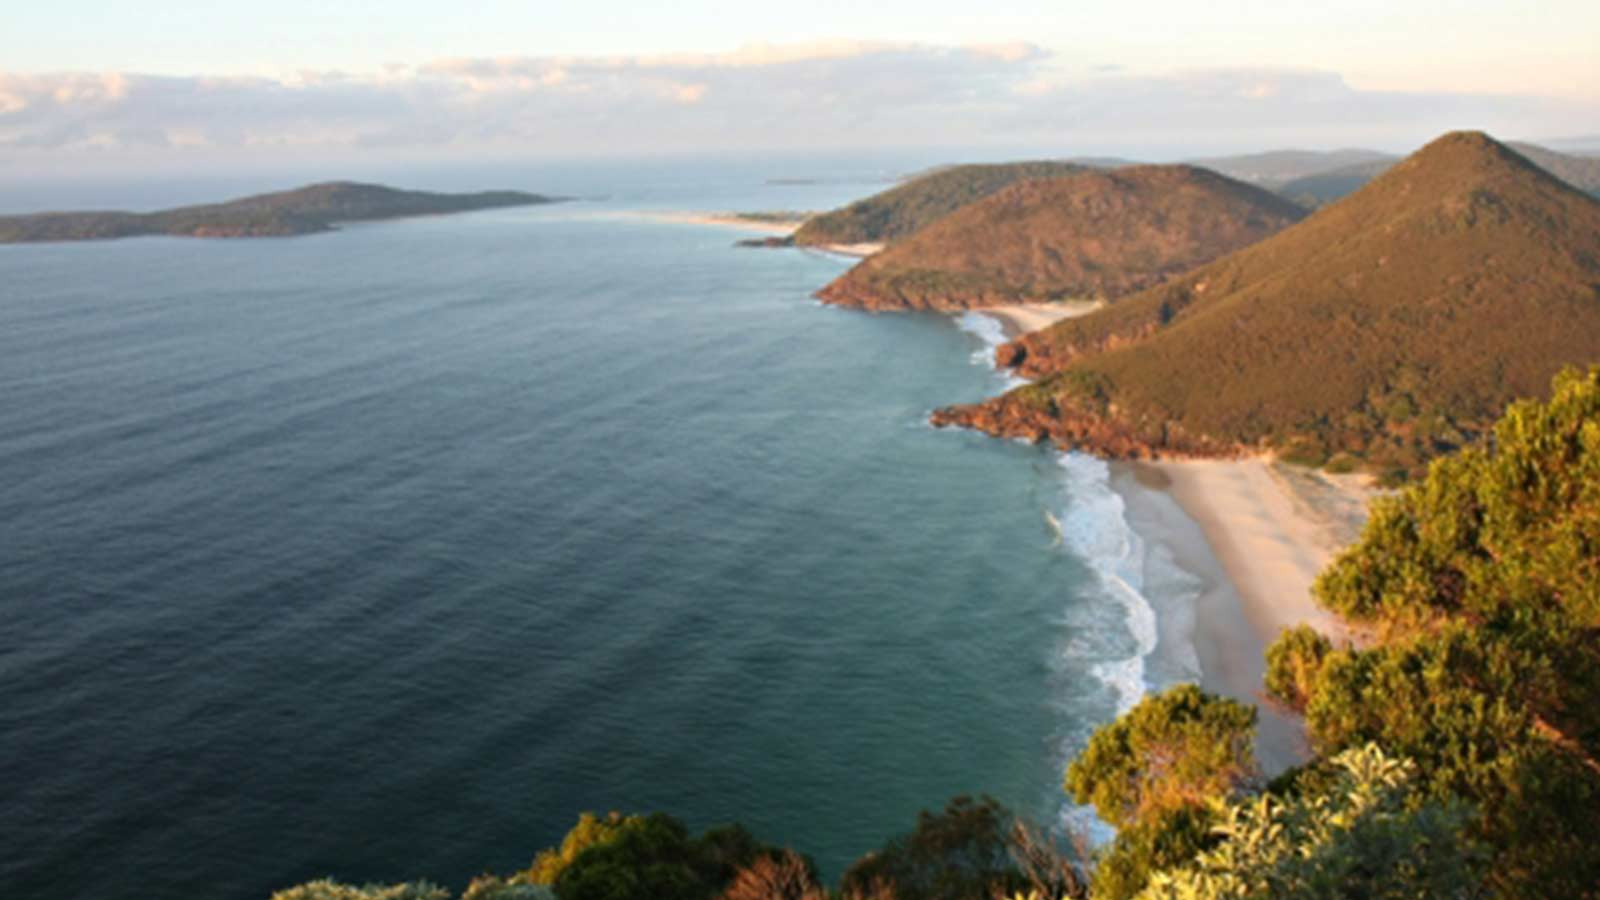 Port Stephens view of the Ocean